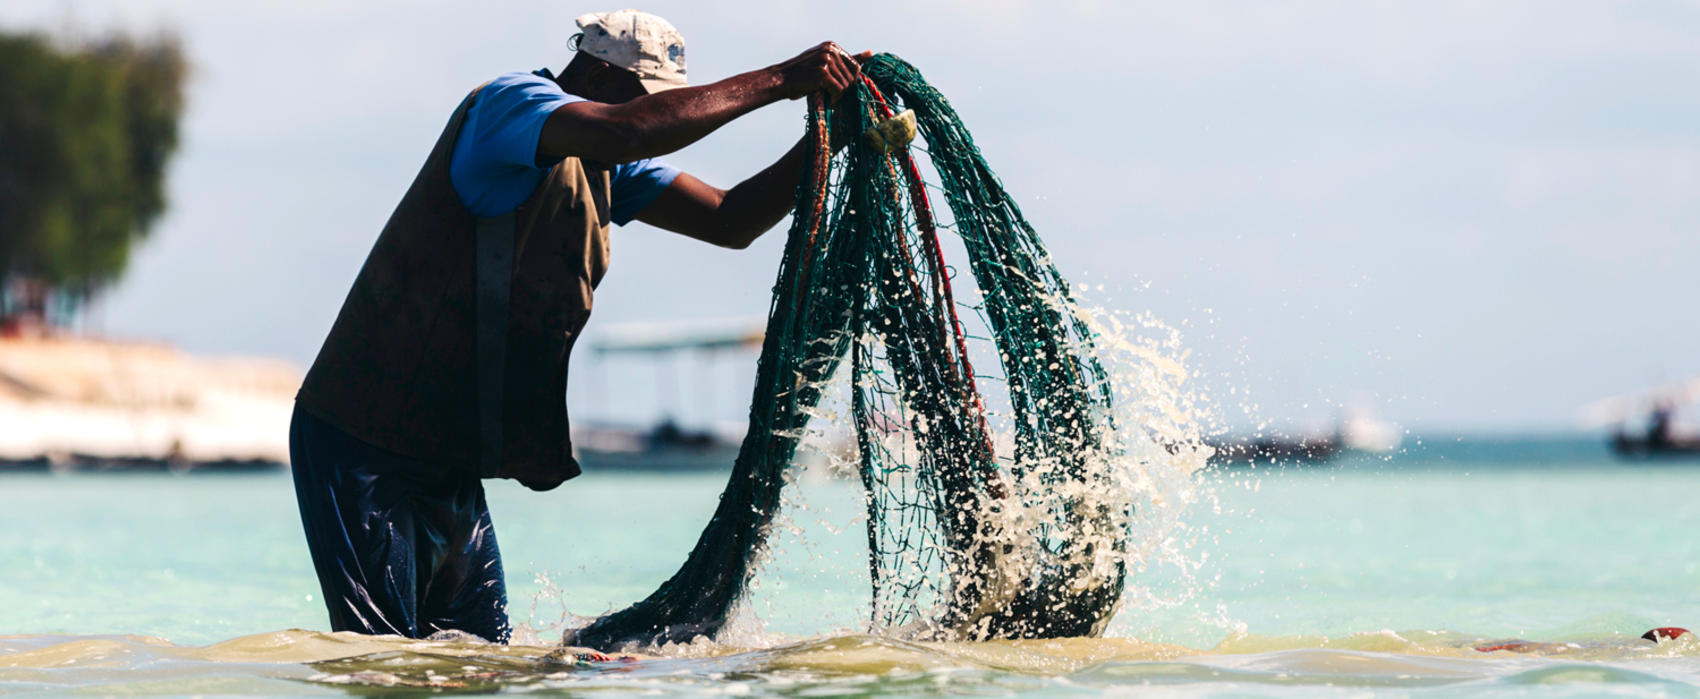 Image: AfDB's loan is expected to help support fisheries in the region. Photo: Courtesy of African Development Bank.